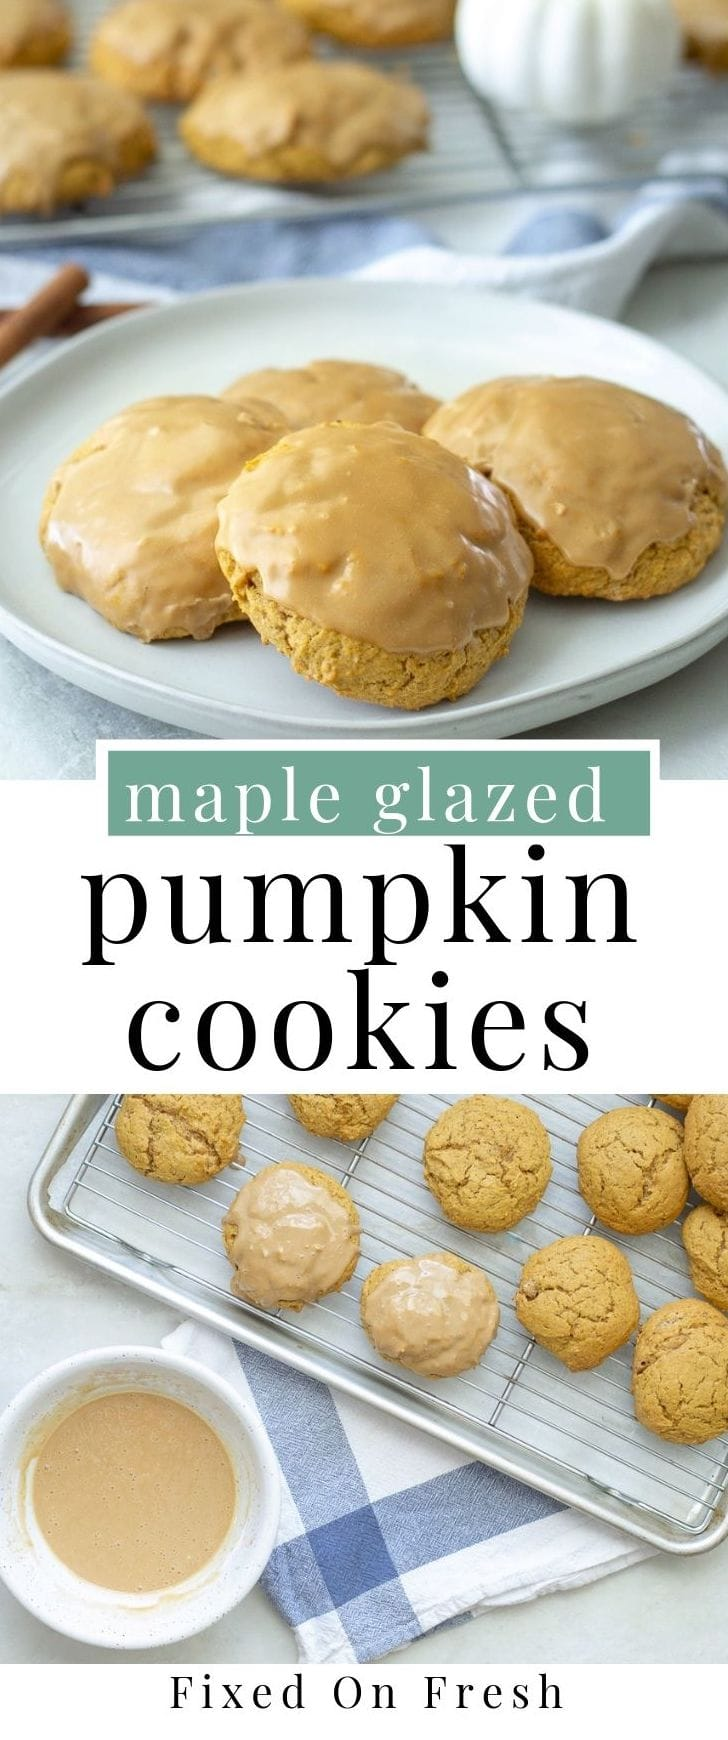 Maple glazed pumpkin cookies are so easy, soft, melt in your mouth, delicious you might have to make a double batch. These will be perfect for fall cookie parties or even as a Thanksgiving dessert. #fallrecipe #cookies #pumpkinspice